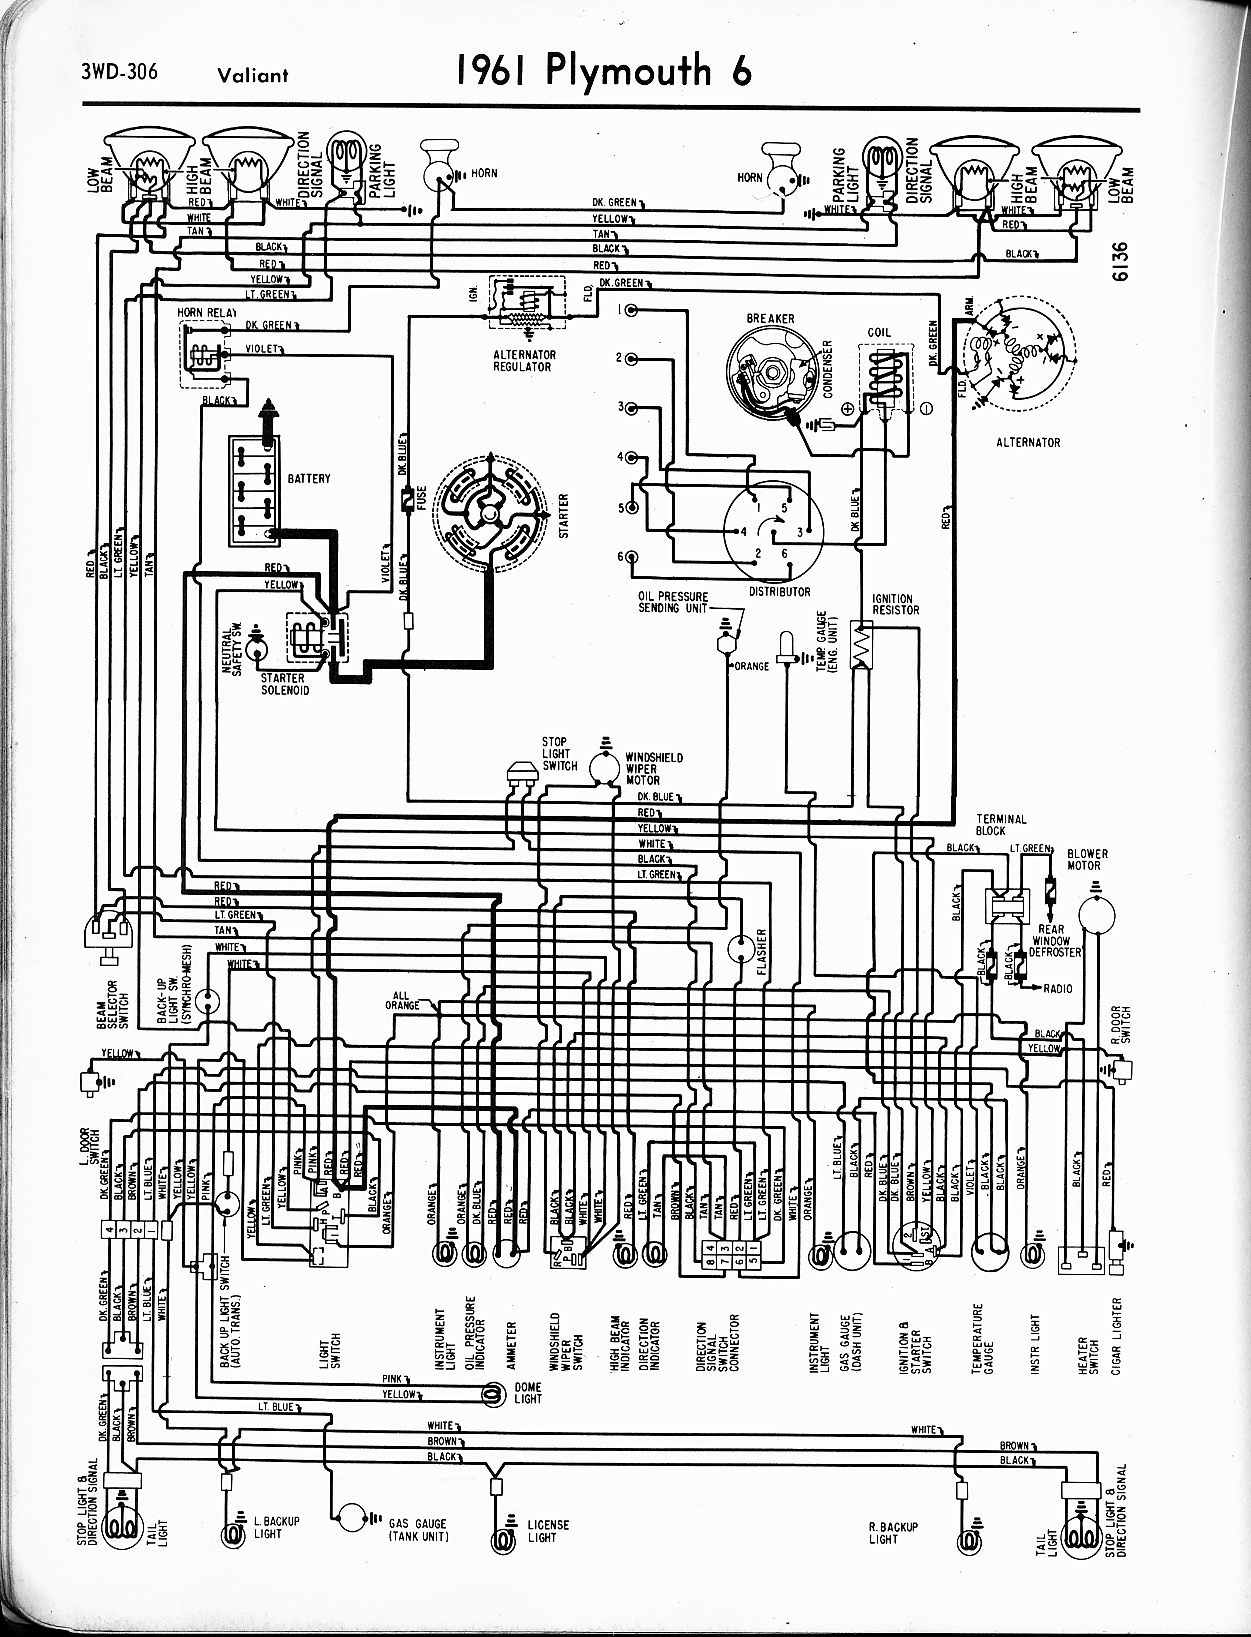 1951 Plymouth Cranbrook Wiring Diagram | Wiring Library